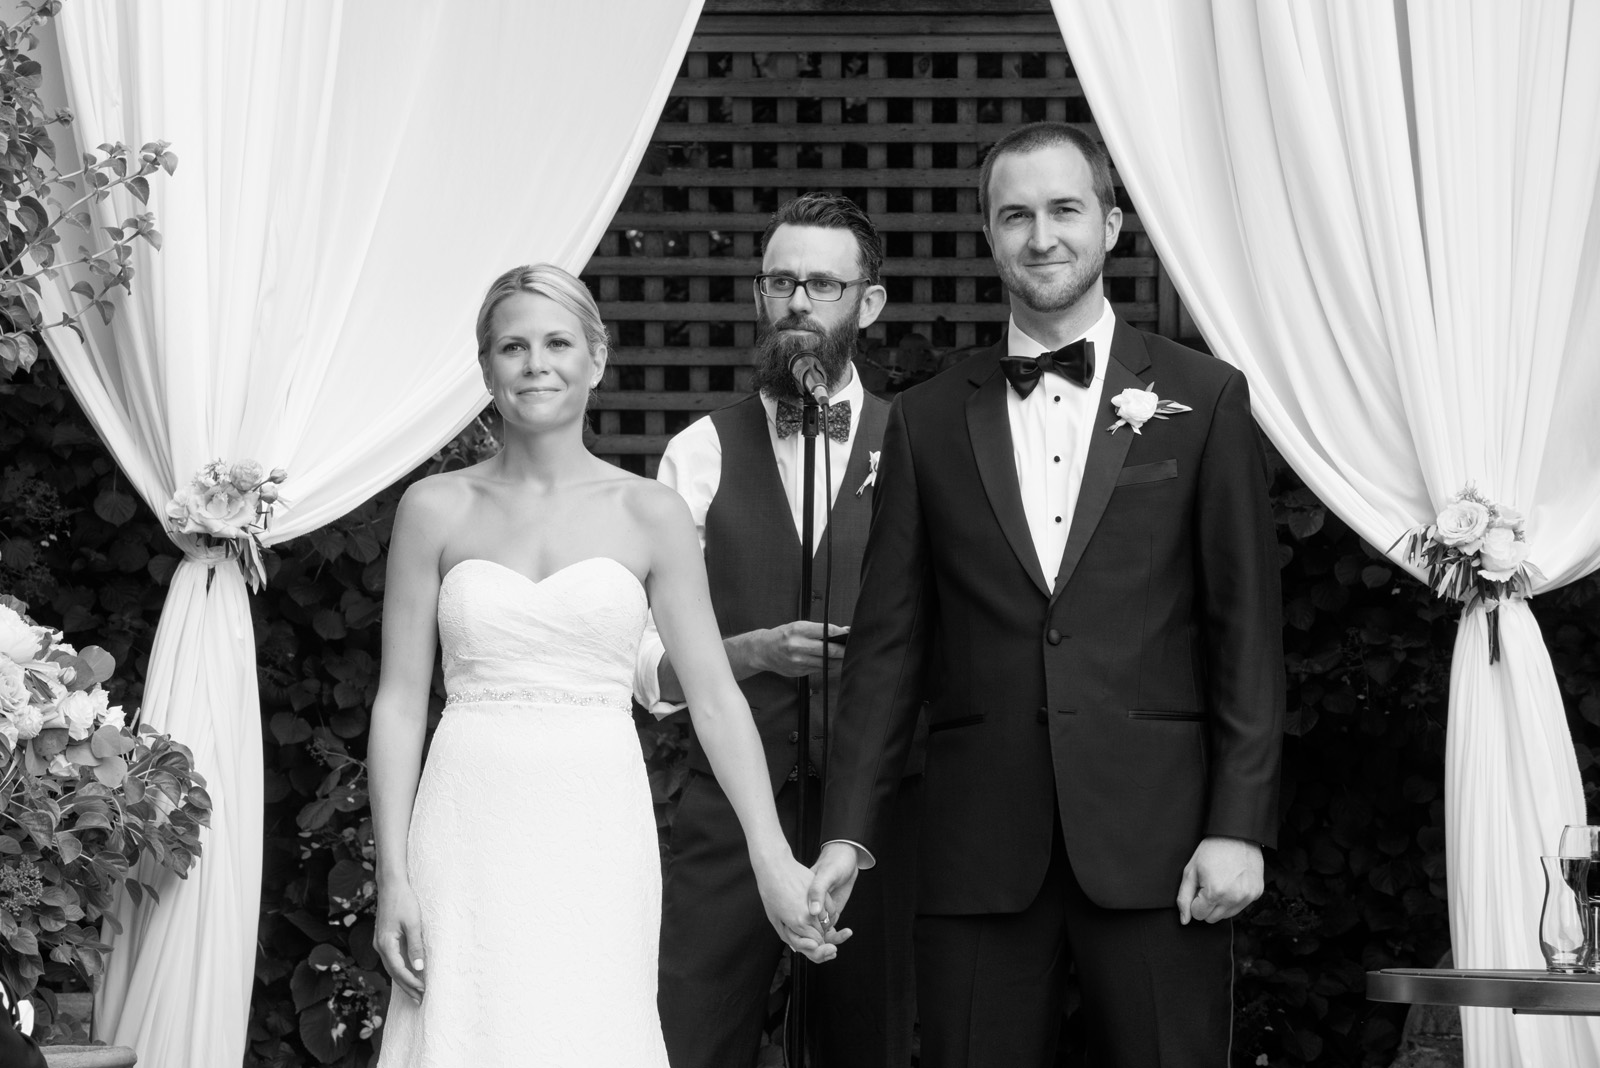 Black and White photo of Bride and Groom during wedding ceremony